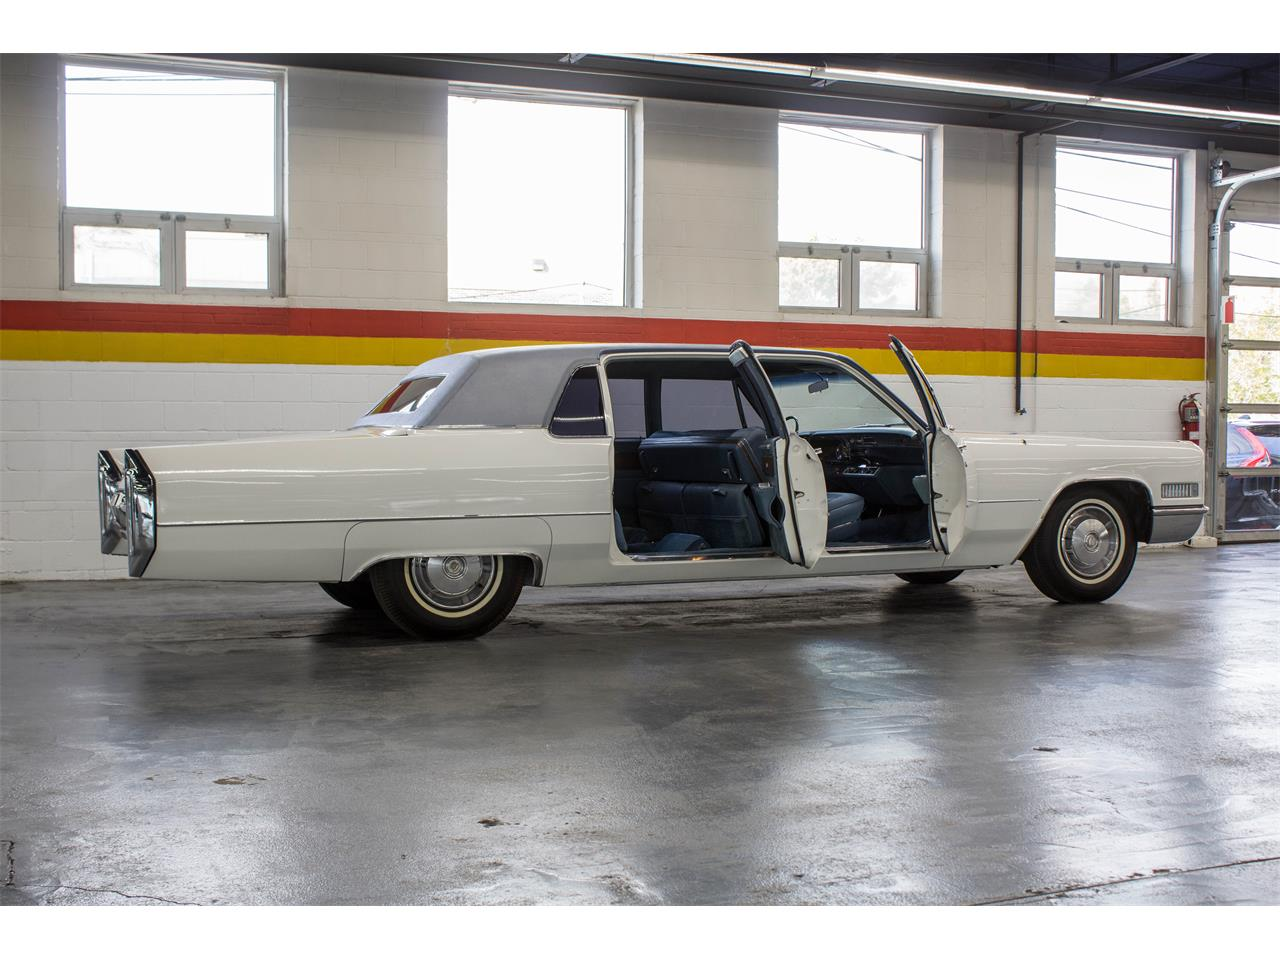 Large Picture of '66 Cadillac Fleetwood Limousine located in Quebec Offered by John Scotti Classic Cars - NKXQ